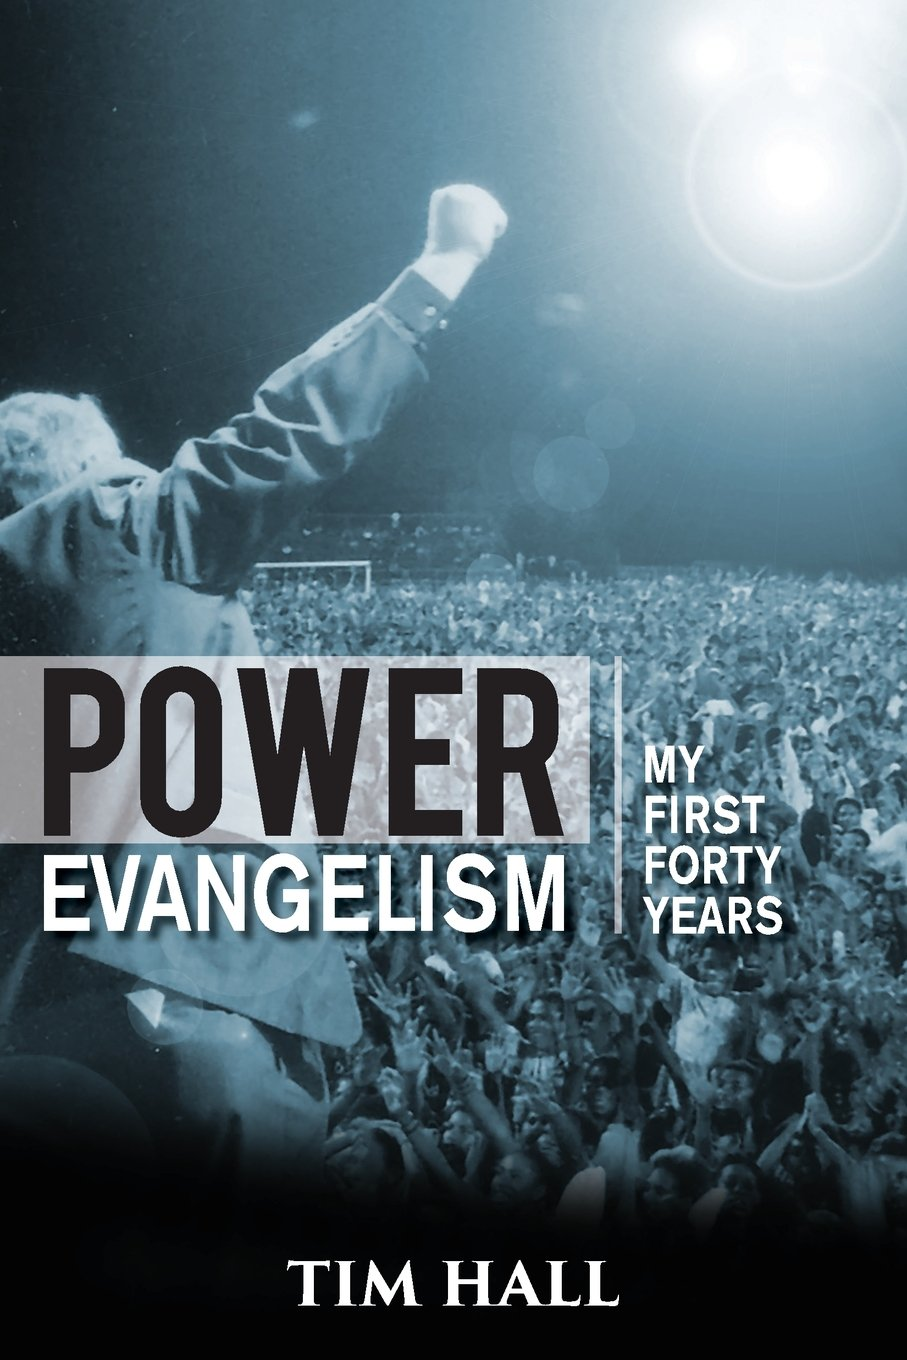 Shared services evangelists 2 0 - Power Evangelism Part One My First Forty Years Tim Hall 9781921589560 Amazon Com Books